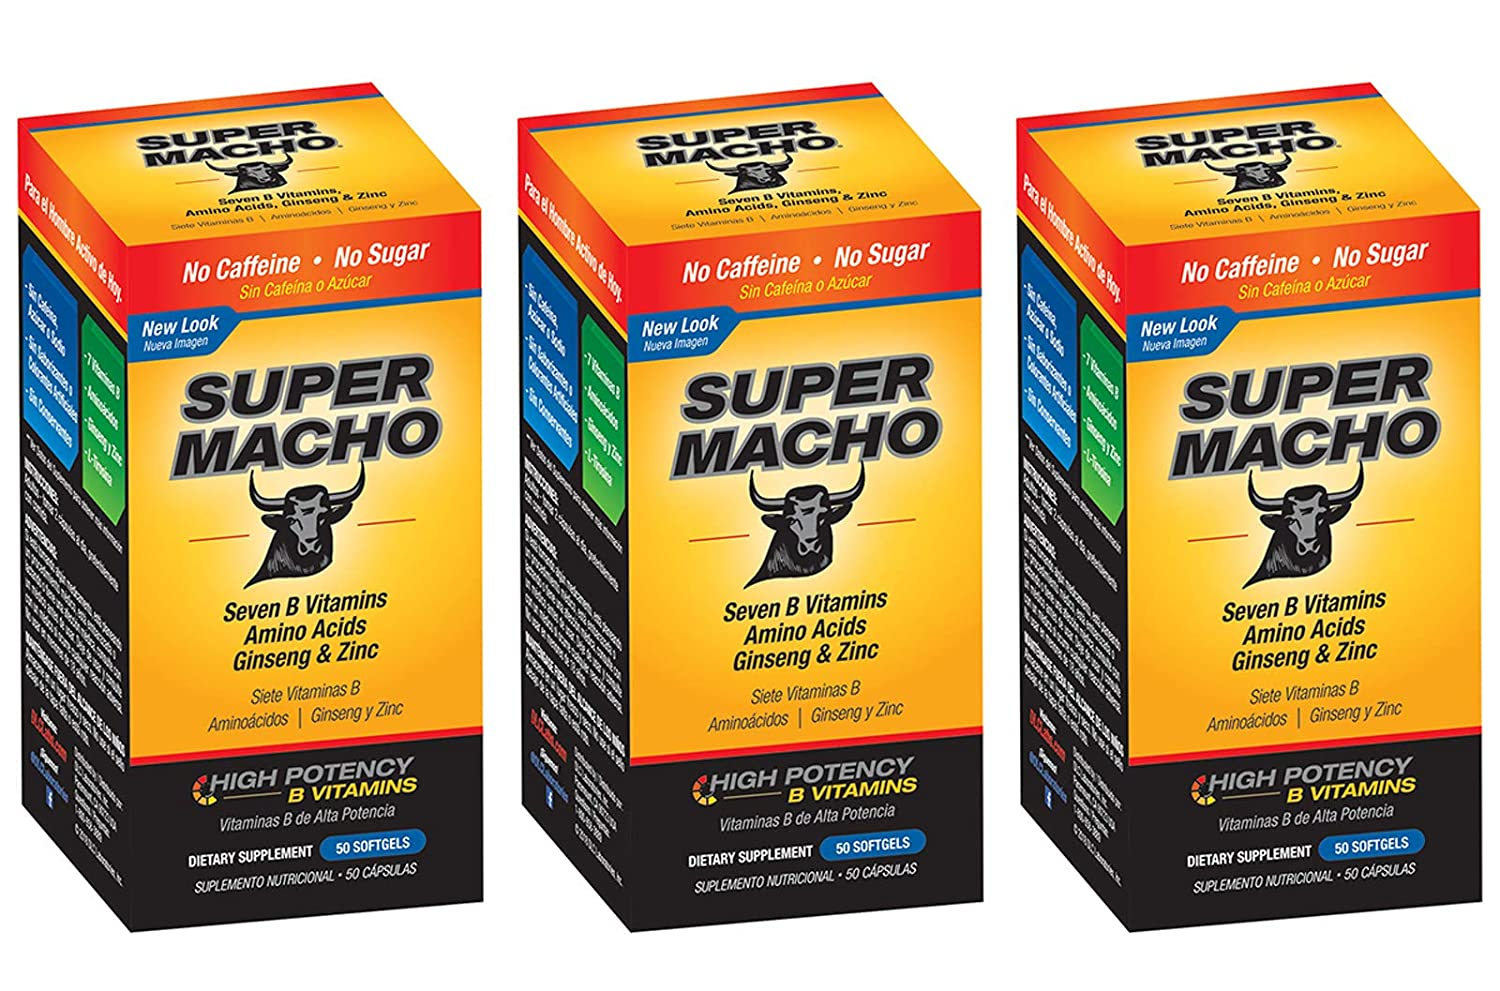 Amazon.com: Super Macho Dietary Supplement with High Potency B Vitamins, No Preservatives, Sugar or Caffeine, Made in USA, 50 Softgels (3 Bottles): Health ...